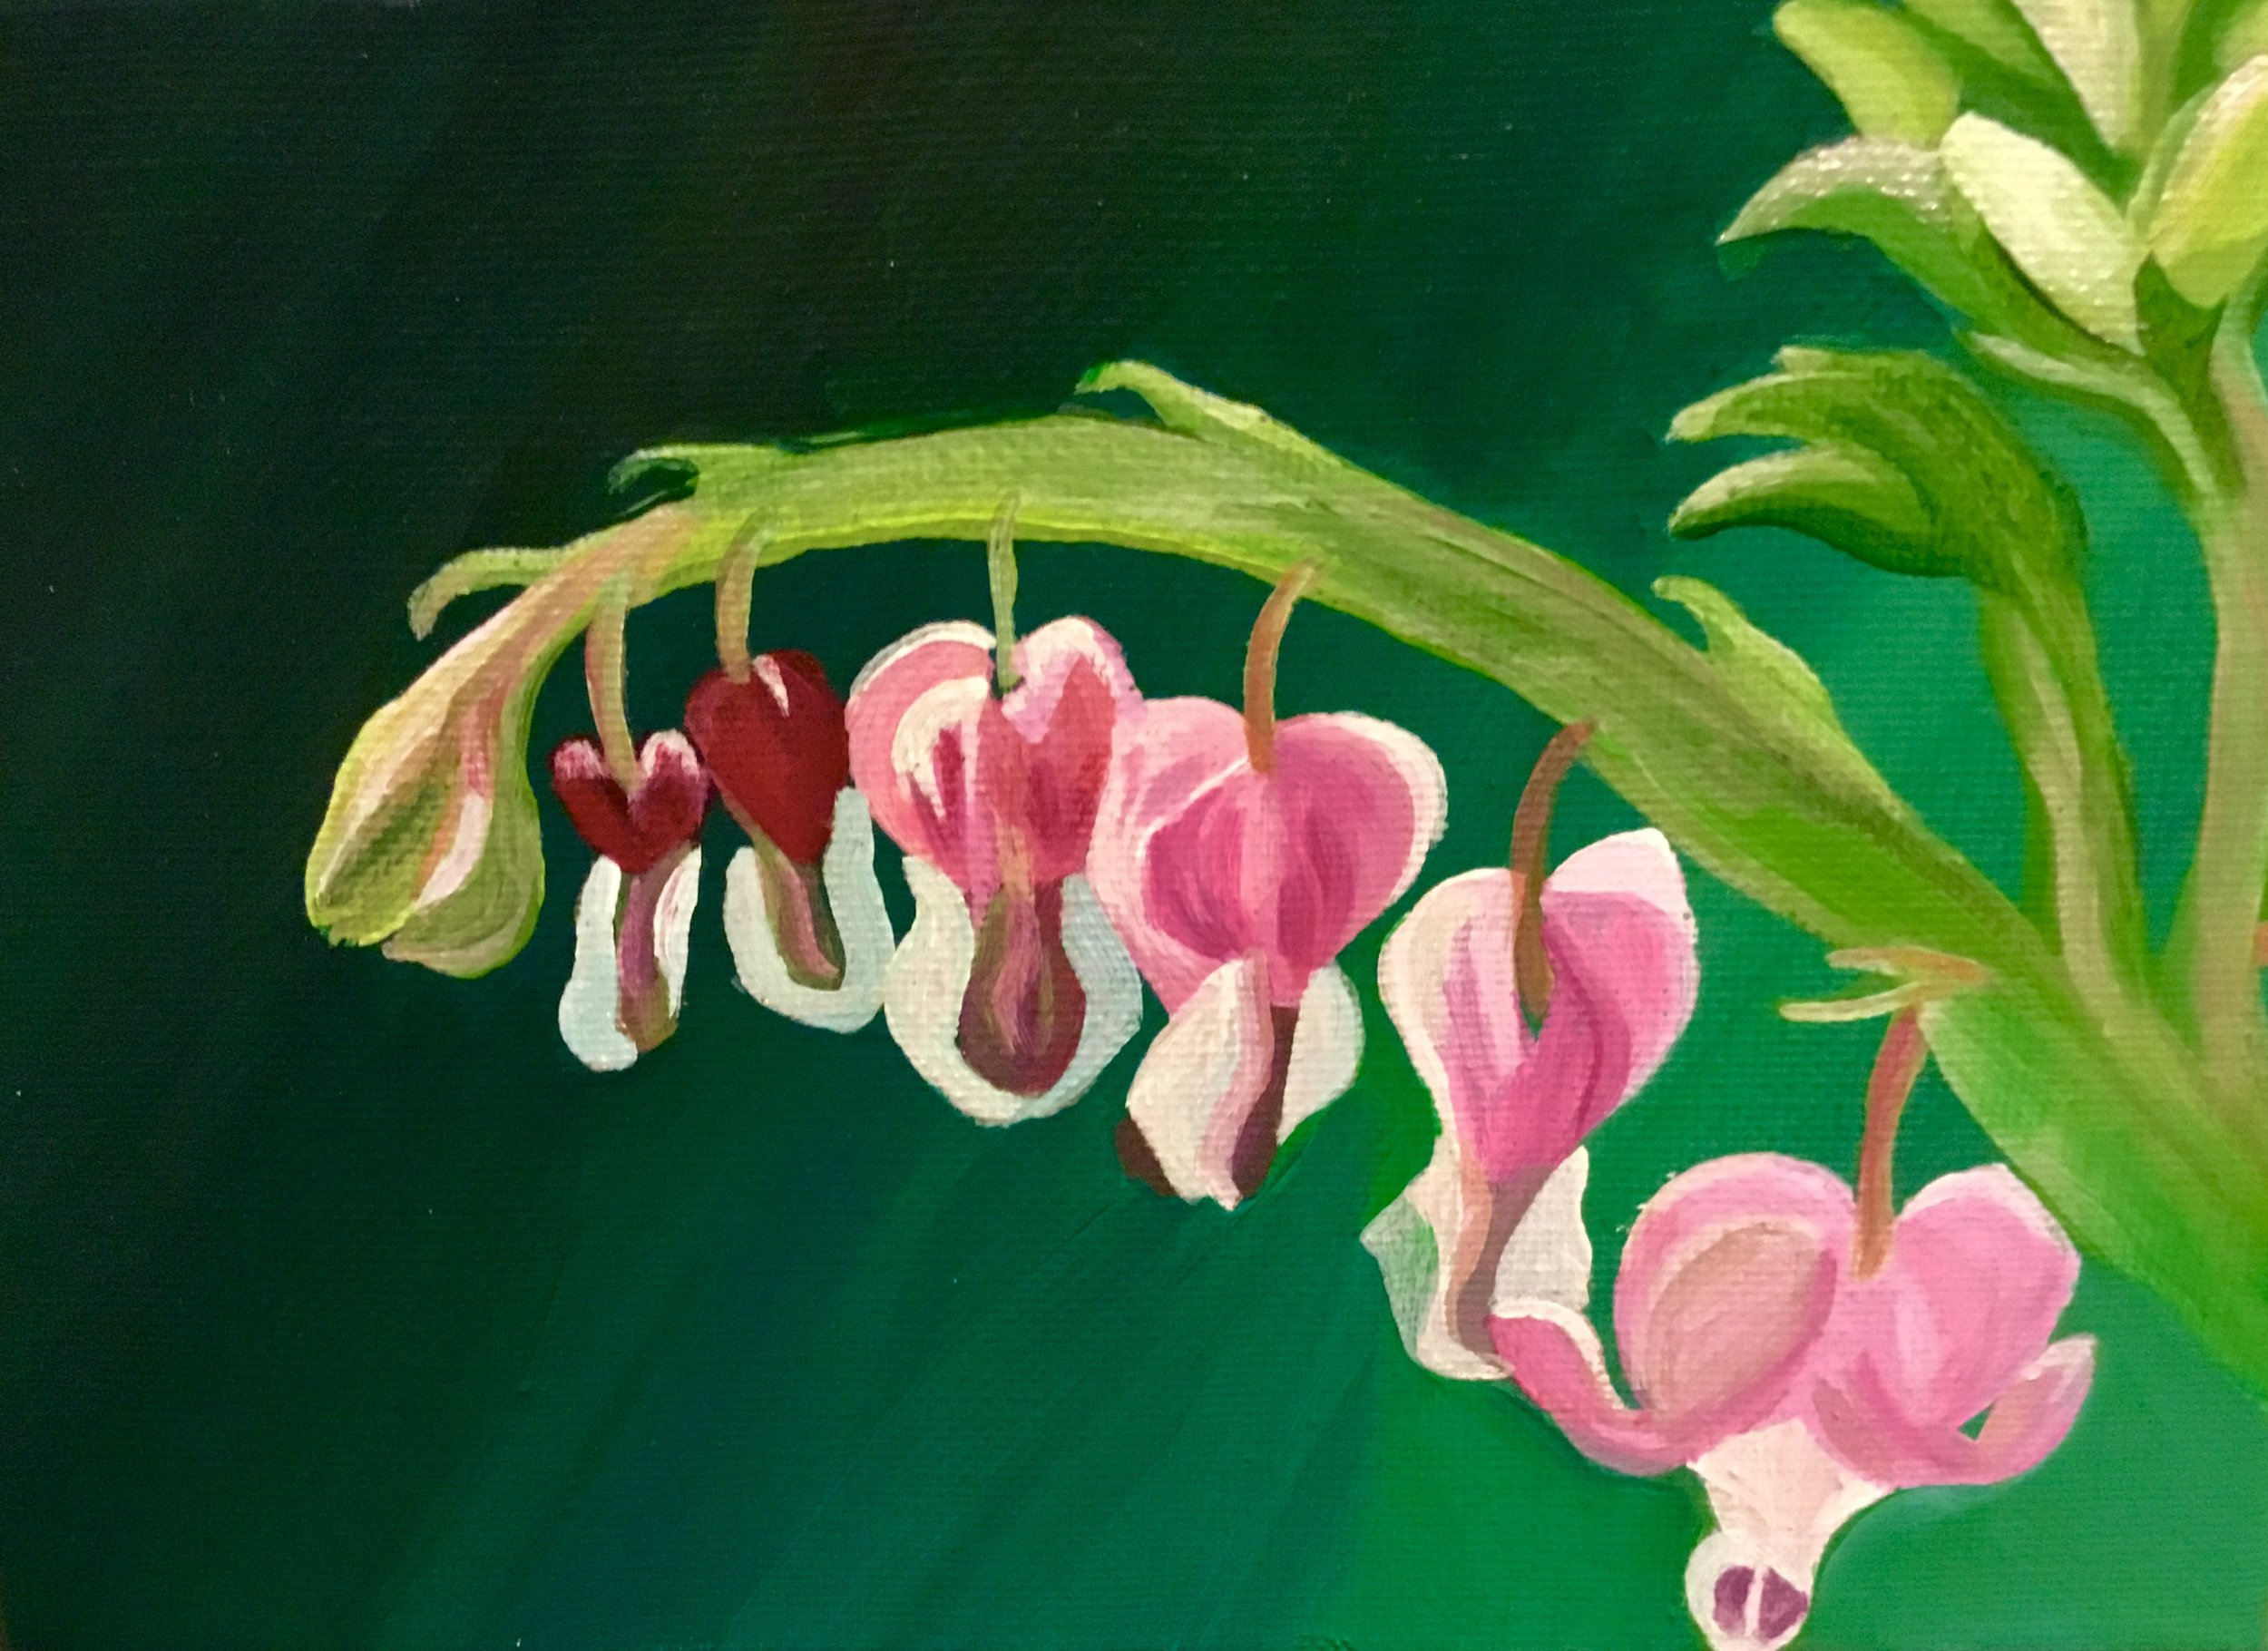 Jadebrace Art - Acrylic paintings on framed canvases, as well as watercolor and ink illustrations